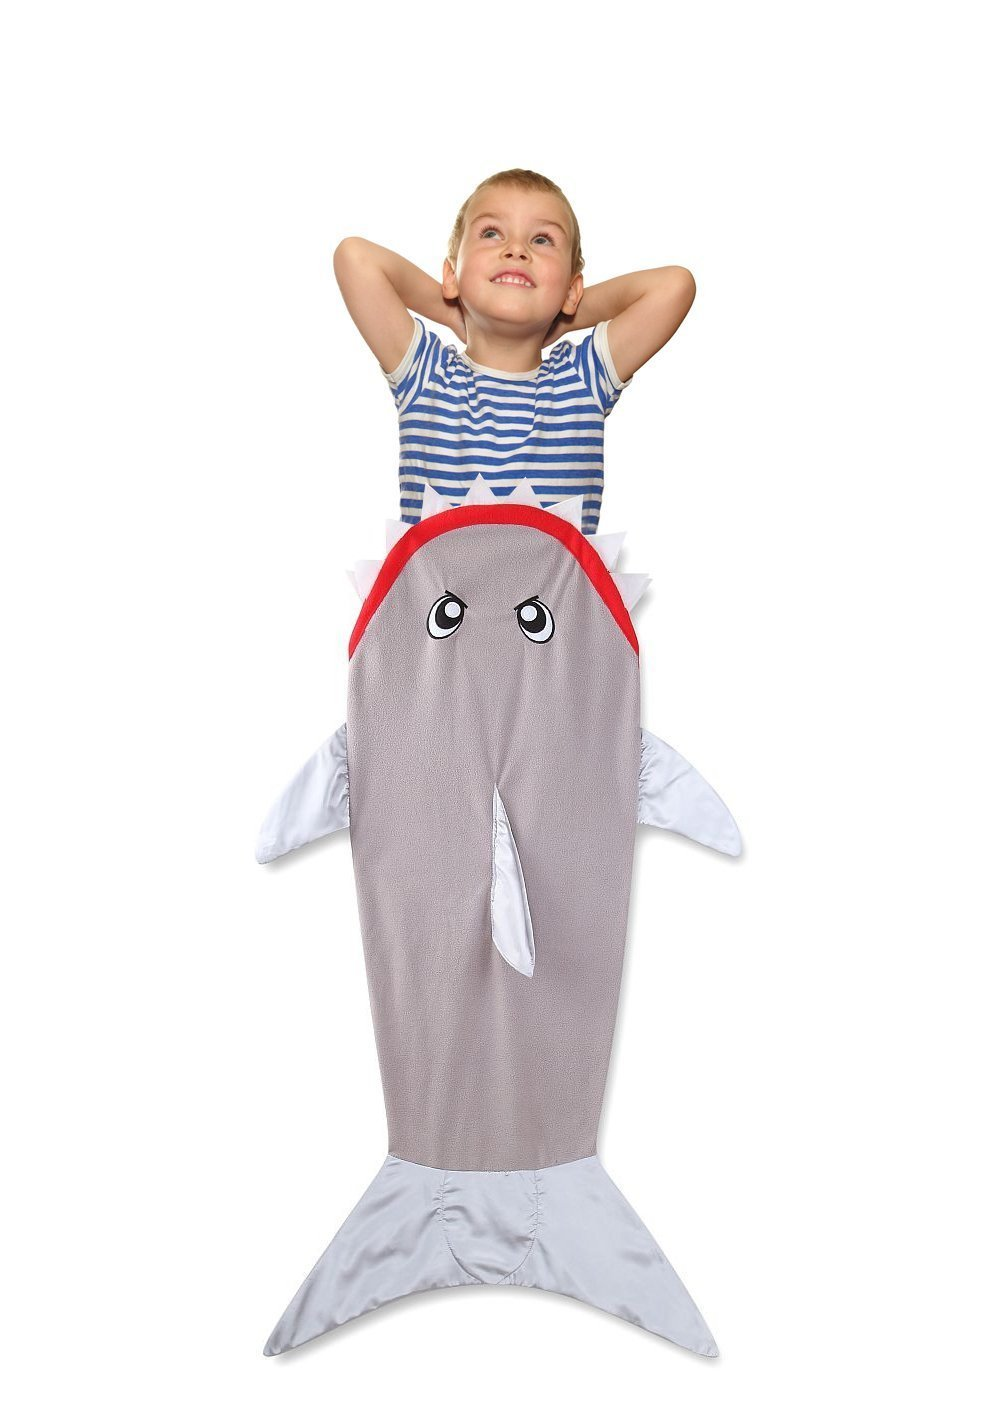 Shark Tail Blanket For Kids Toddler 3 to 12 Years Old Premium Quality Swaddle Cozy Very Soft Comfortable Minky Warm Sleeping Sack Cute And Fun Design - Great Christmas and Birthday Gift - Fleece Grey